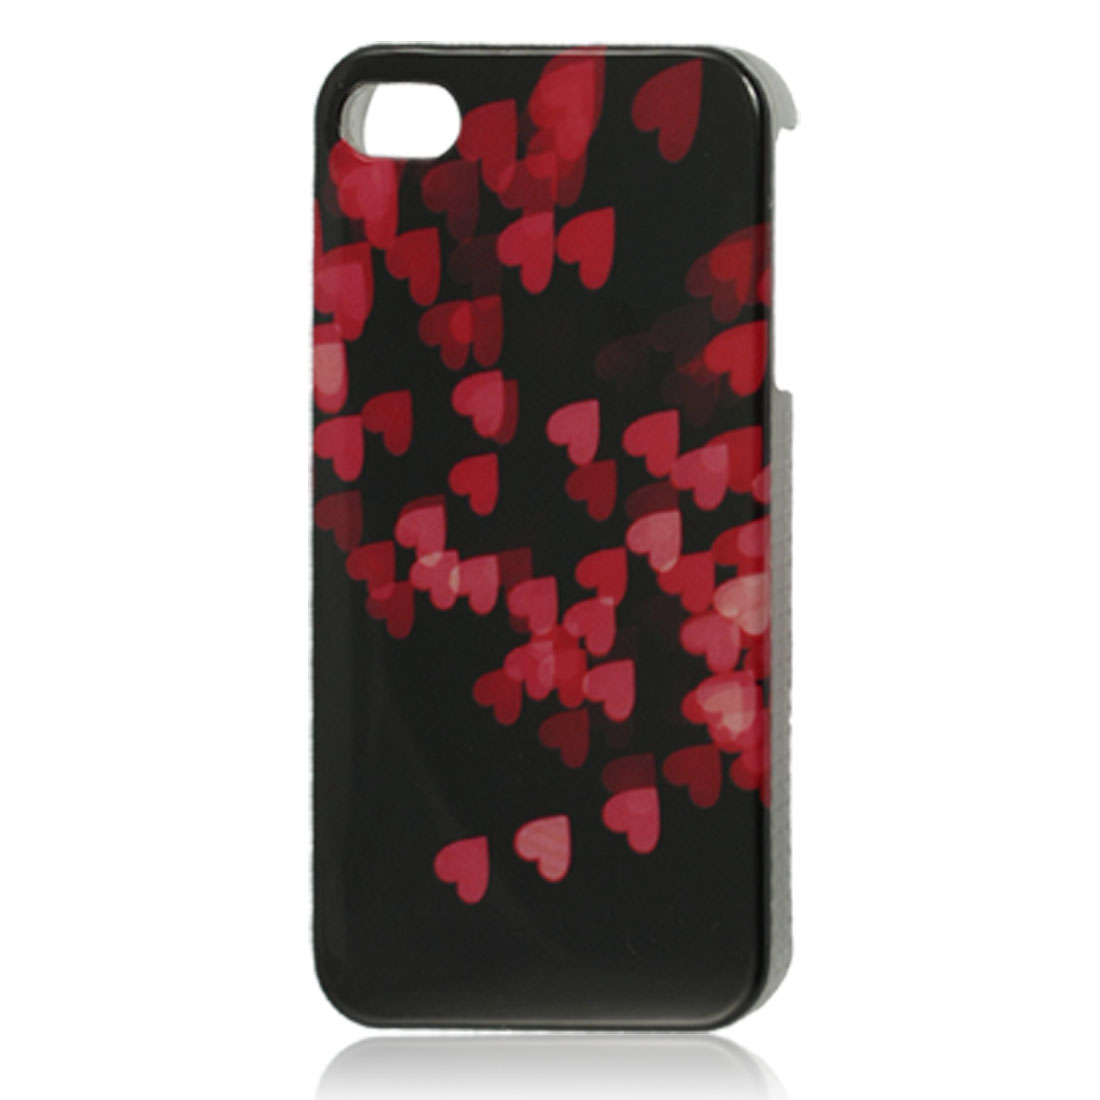 Red Hearts Pattern Black Hard Plastic IMD Back Case for iPhone 4 4G 4S